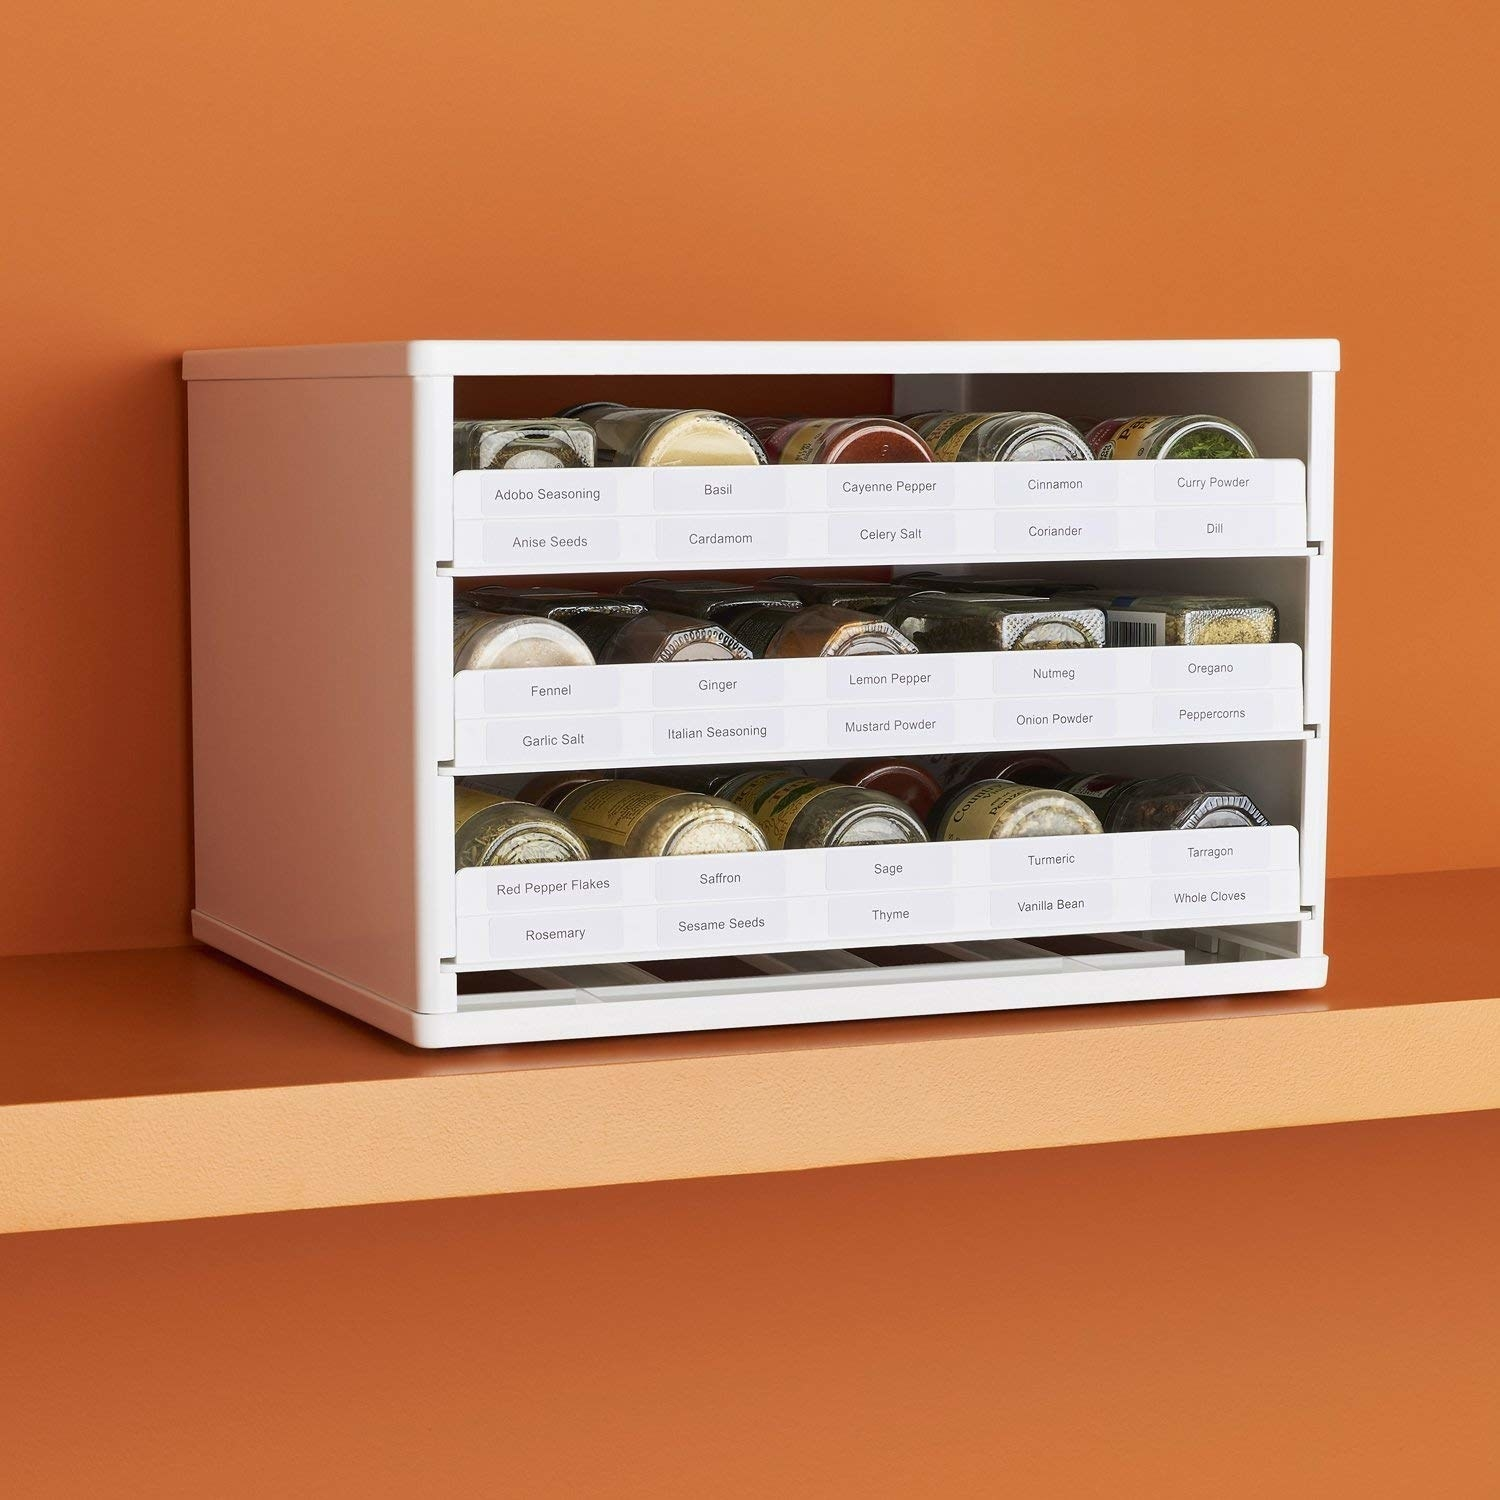 If You Have A Kitchen, You Need To Get This Pull-Down Rack For All Your Spices